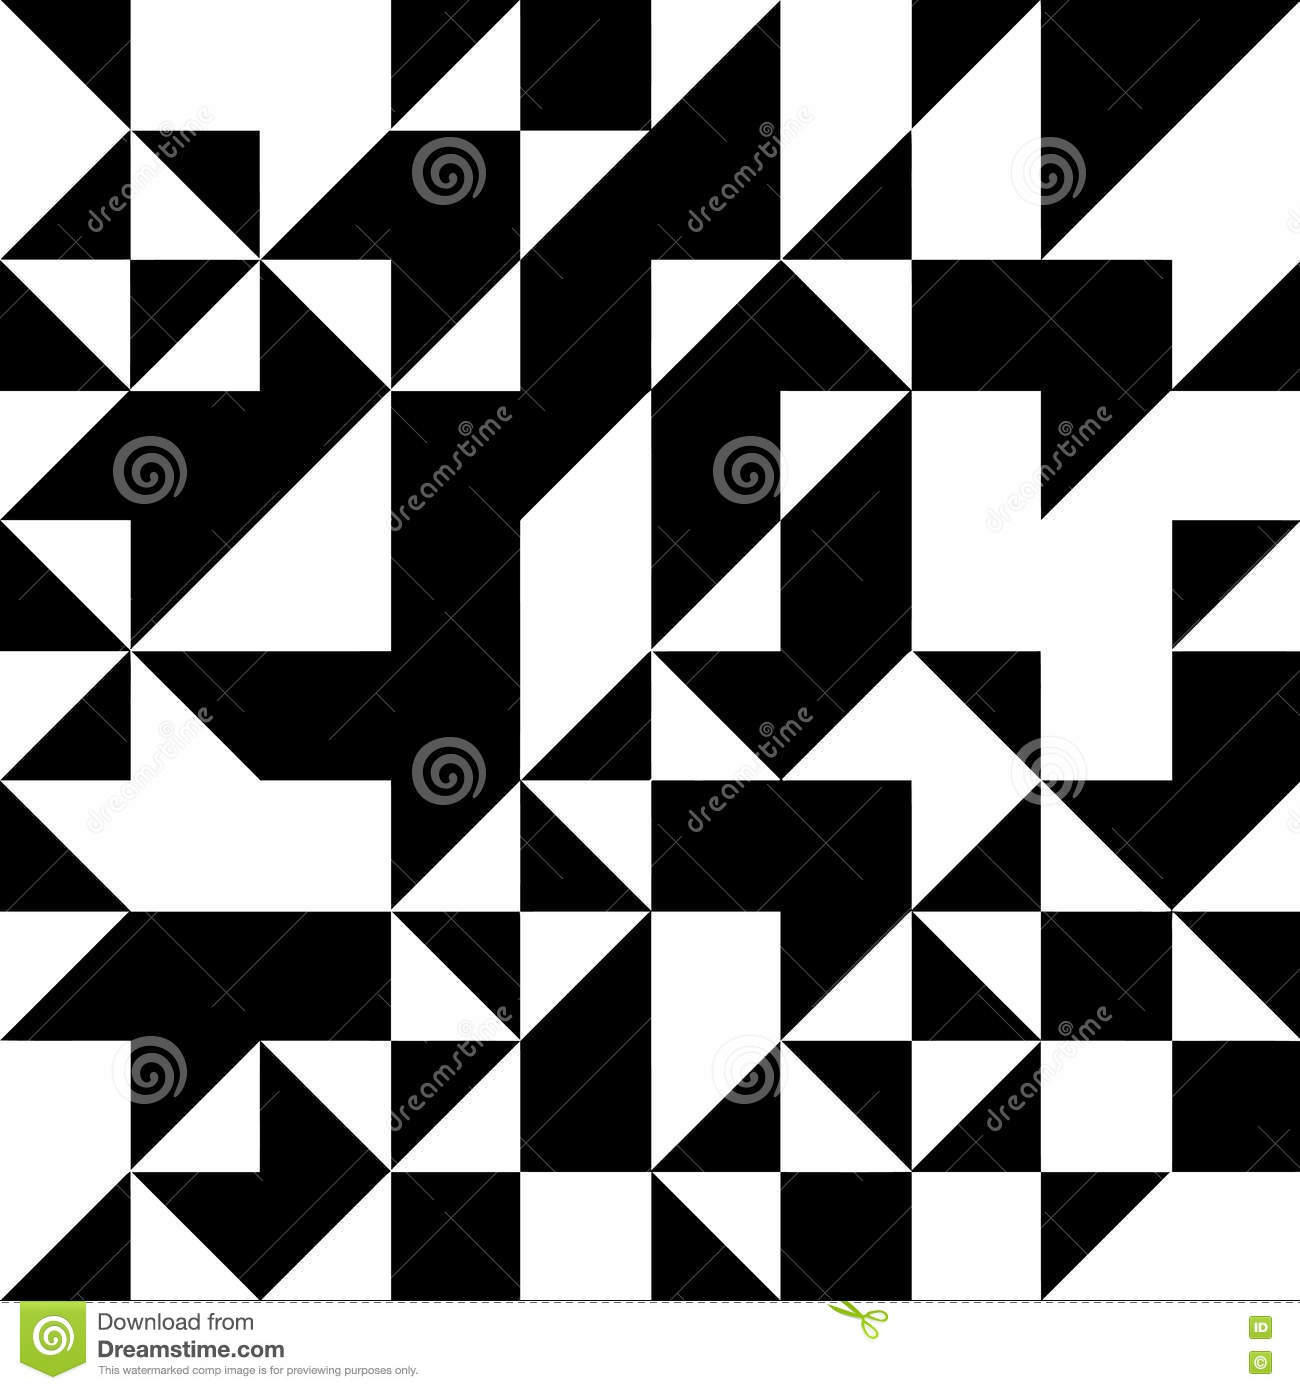 Triangle Geometric Shapes Pattern. Black And White Stock Vector ... for Geometric Shapes Design Black And White  10lpwja